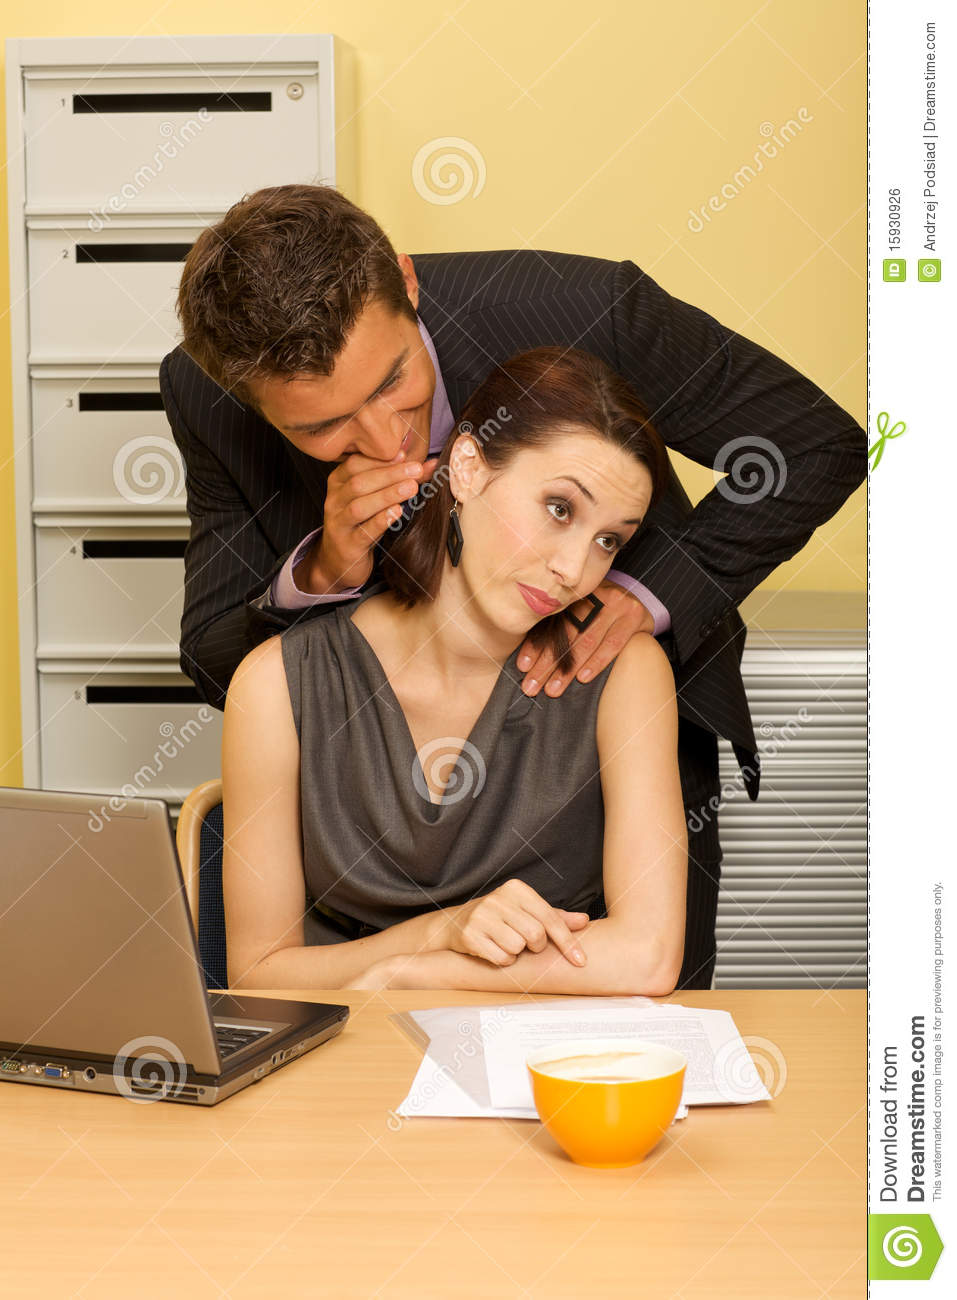 Office Seduction Royalty Free Stock Image - Image: 15930926